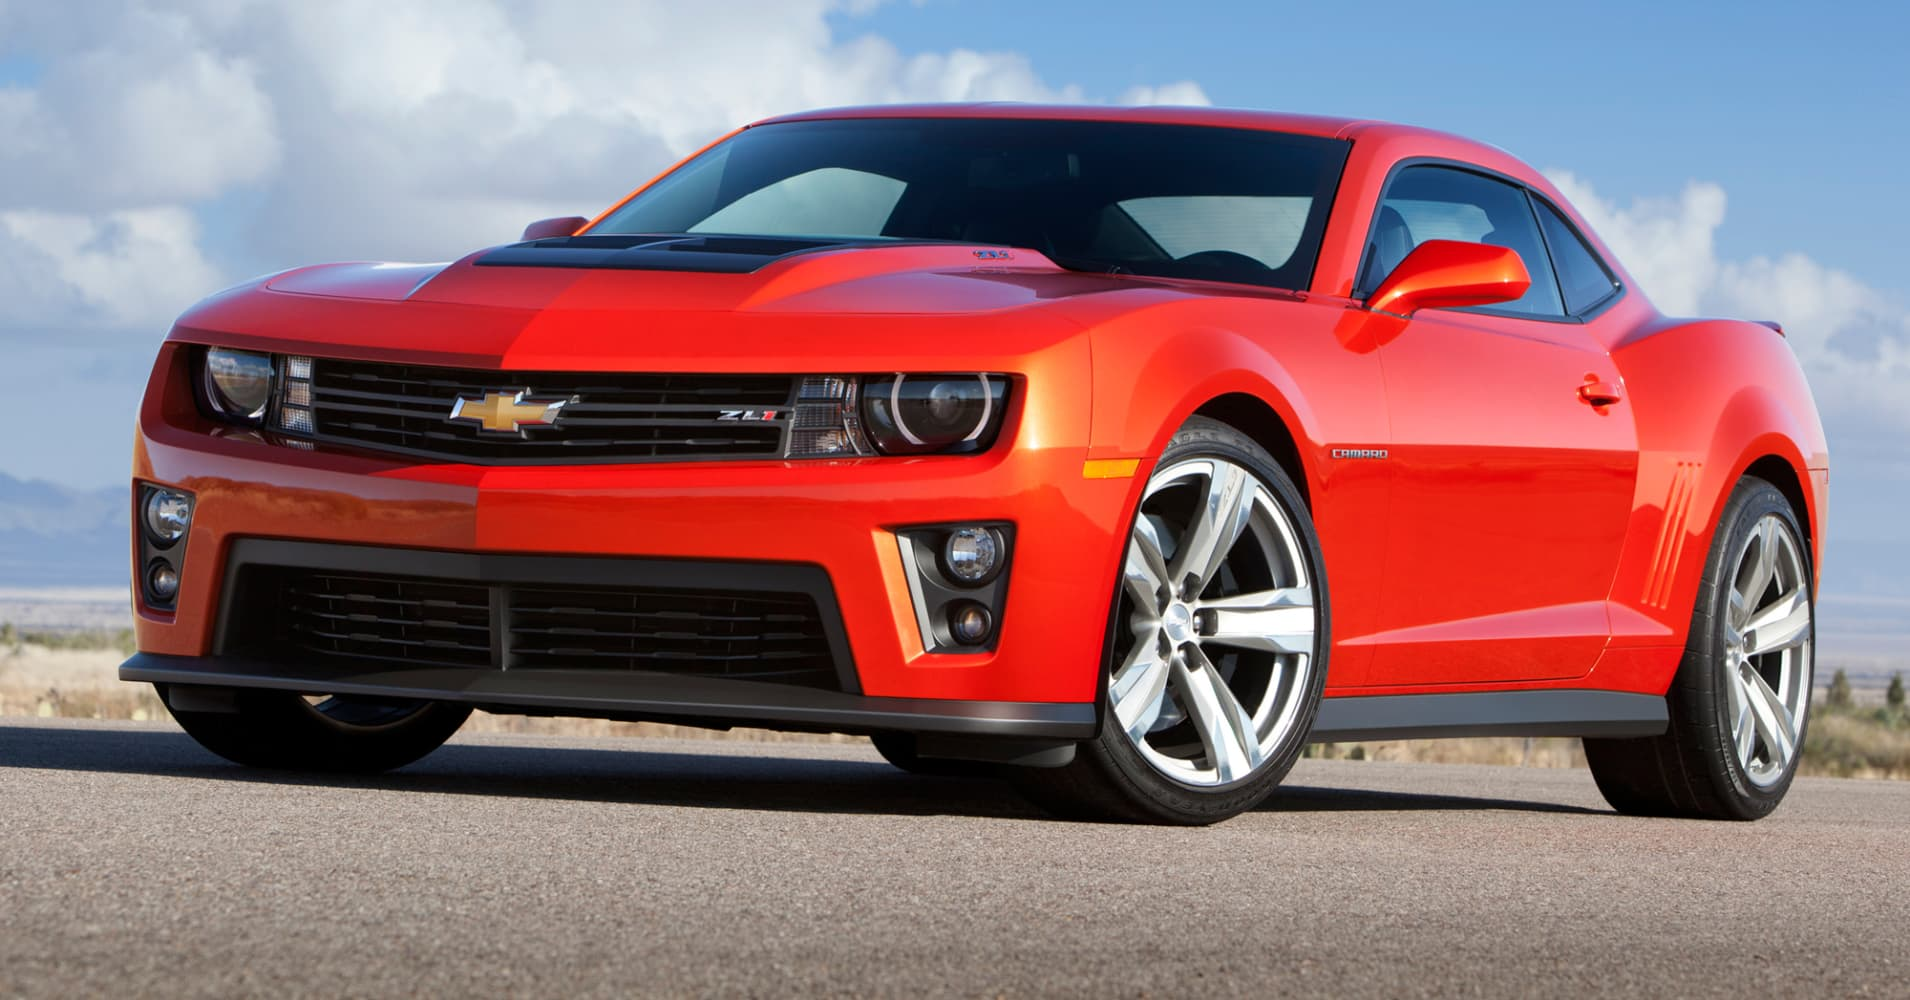 Gm to recall all current generation chevrolet camaros publicscrutiny Gallery